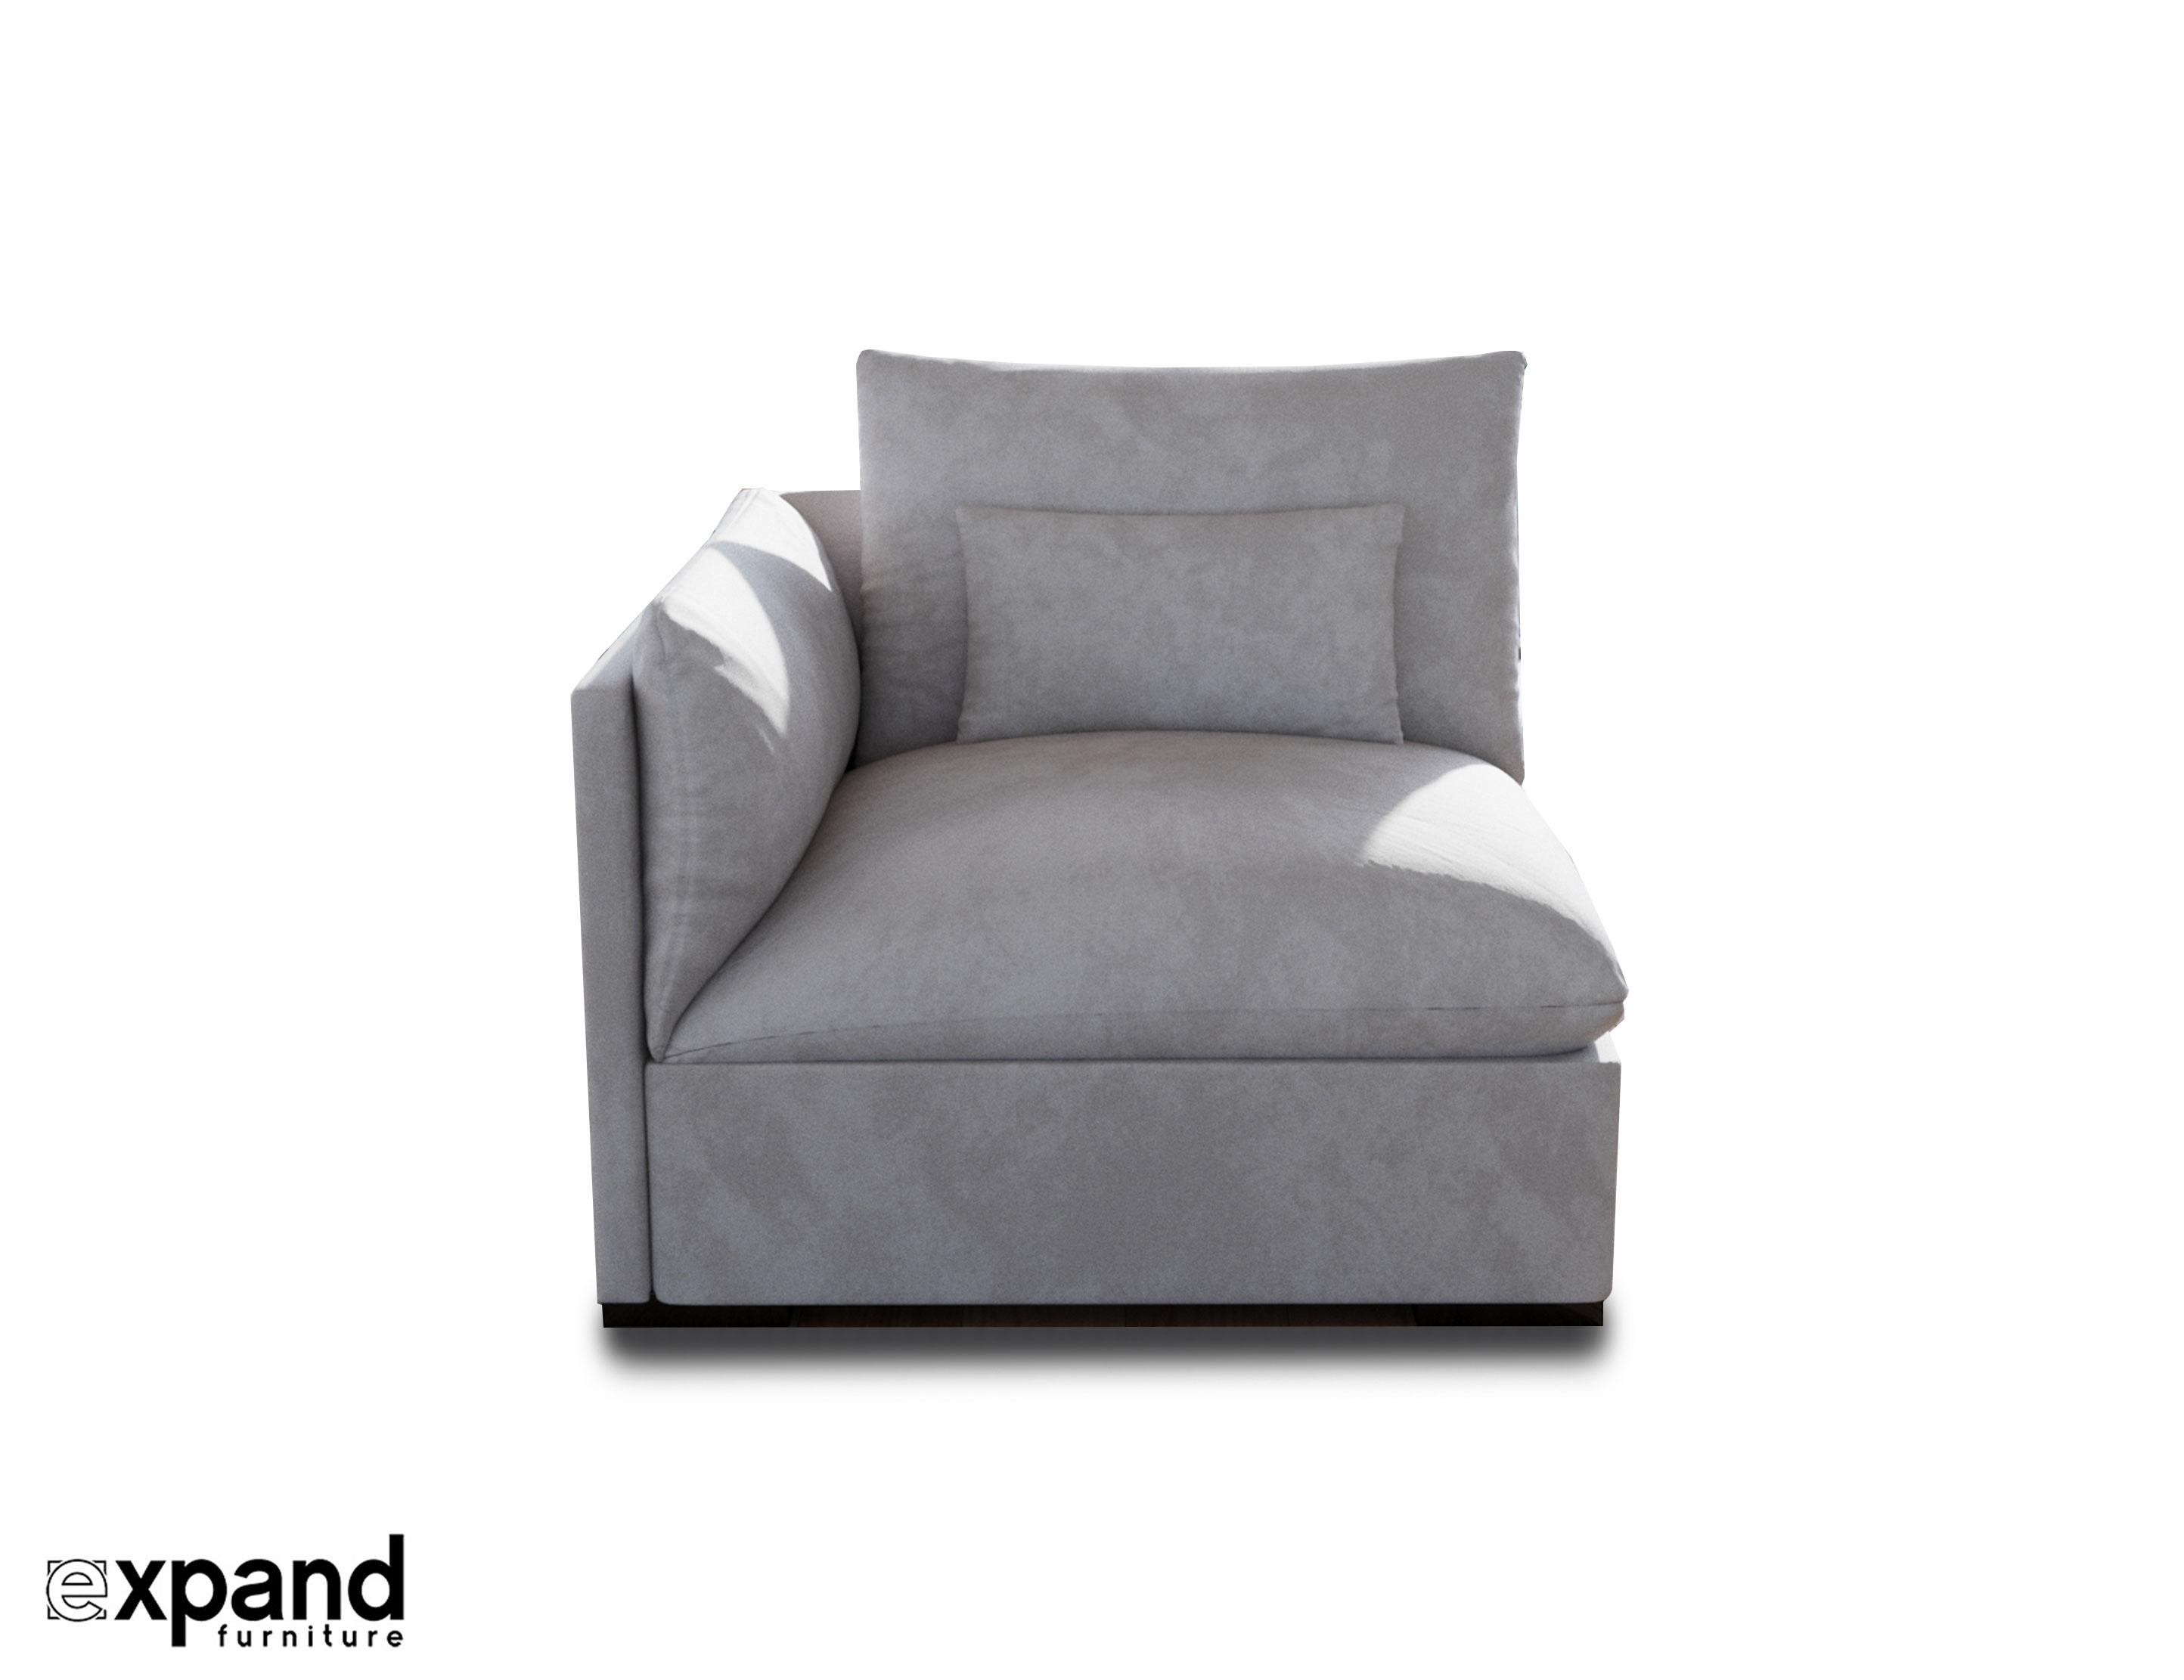 Adagio: Corner Luxury Sofa Module | Expand Furniture – Folding With High End Sofa (Image 3 of 20)